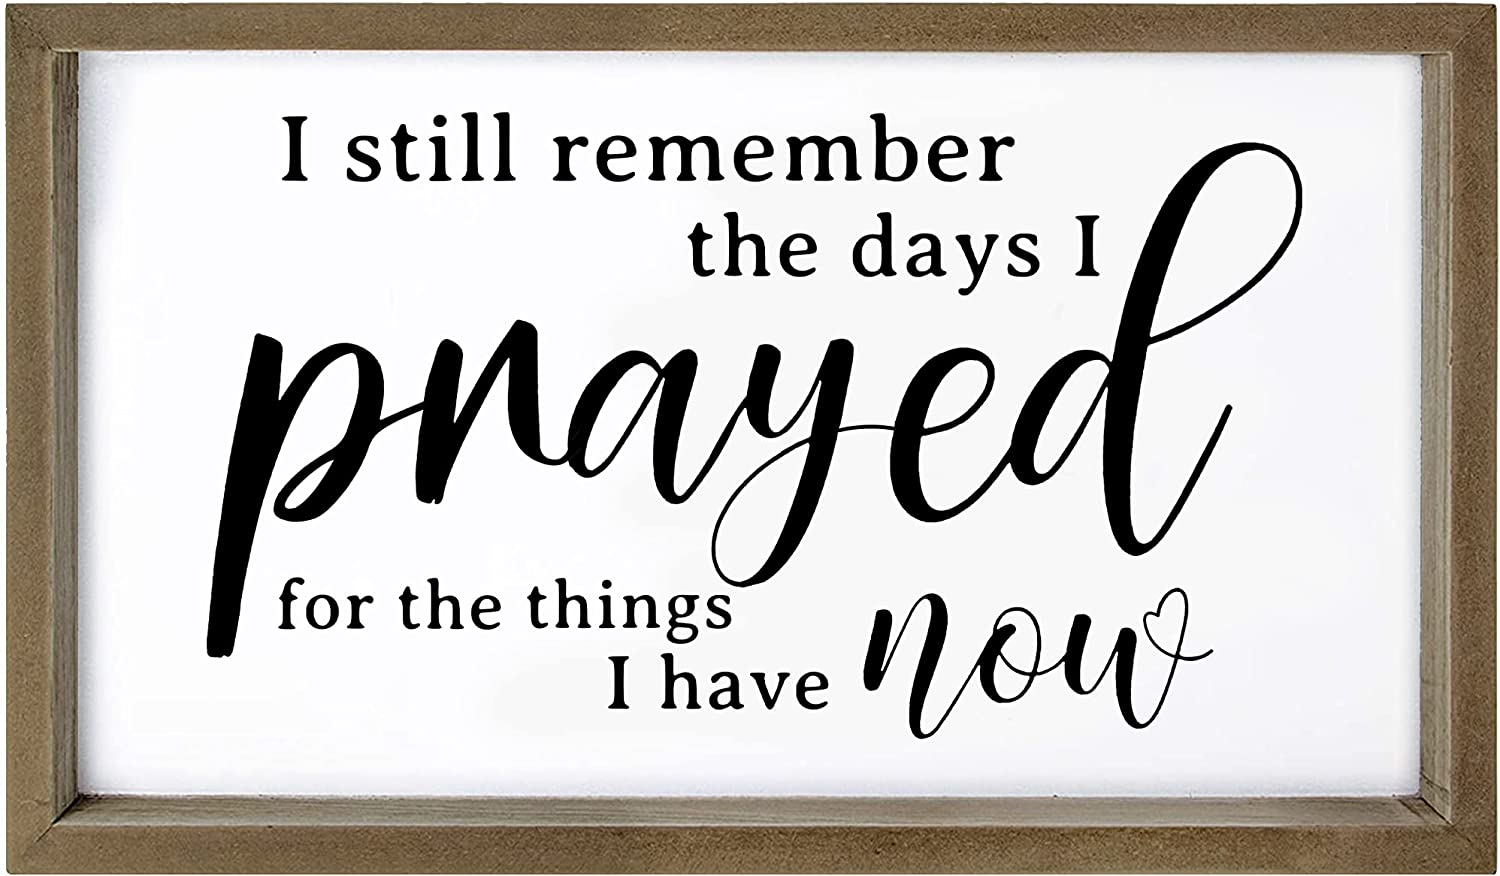 Cocomong Modern Farmhouse Wall Decor for the Home Sign, Rustic Home Decor, Wall Decorations for Living Room, I Still Remember The Days I Prayed for What I Have Now Framed Sign 16x11 Inch